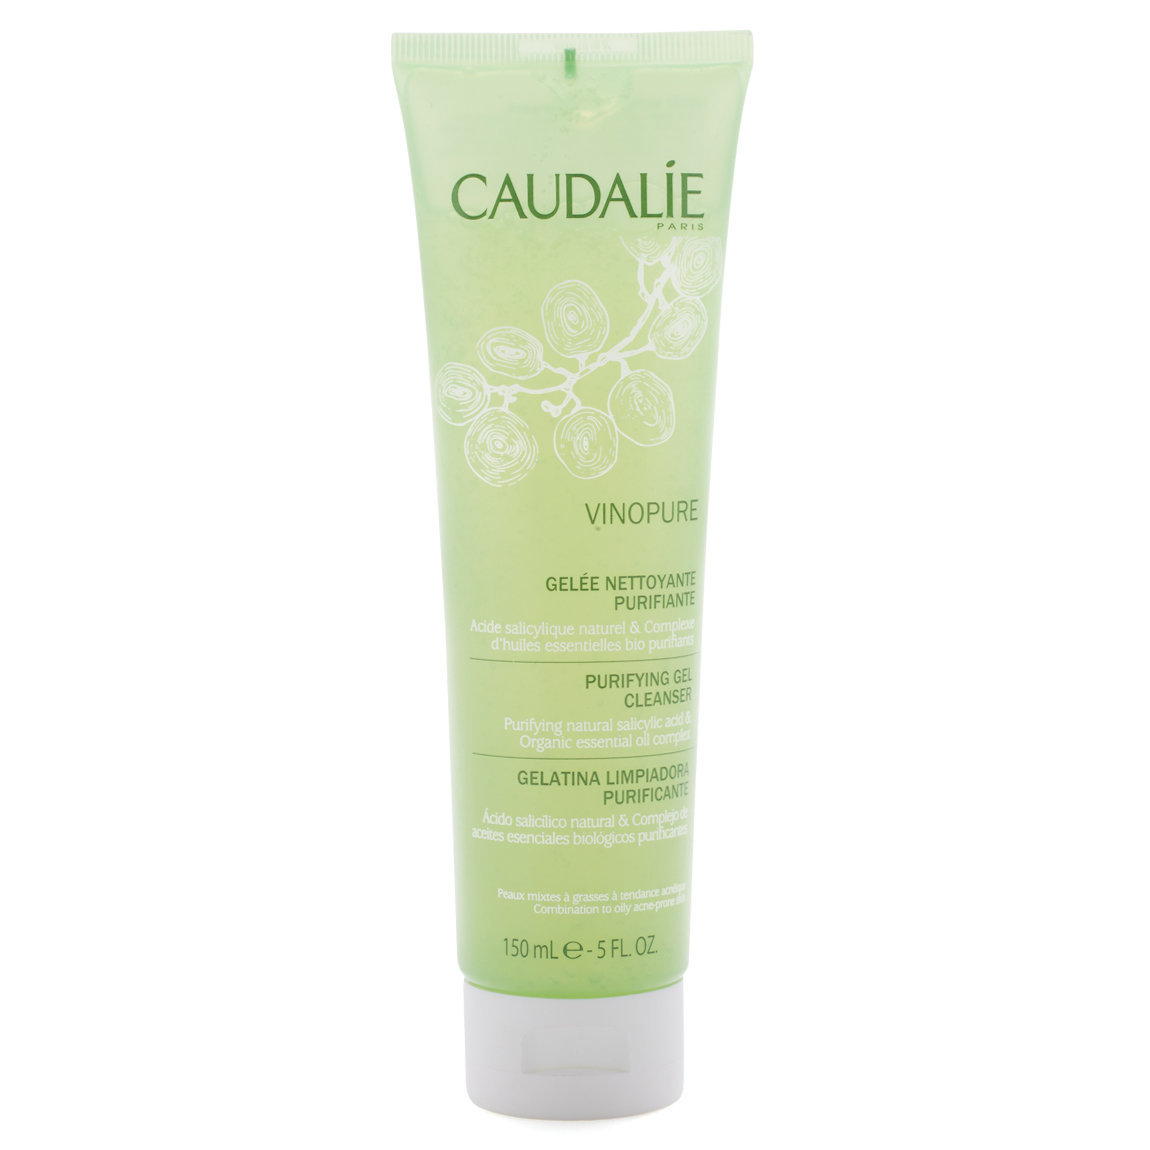 Caudalie Vinopure Cleansing Gel product smear.